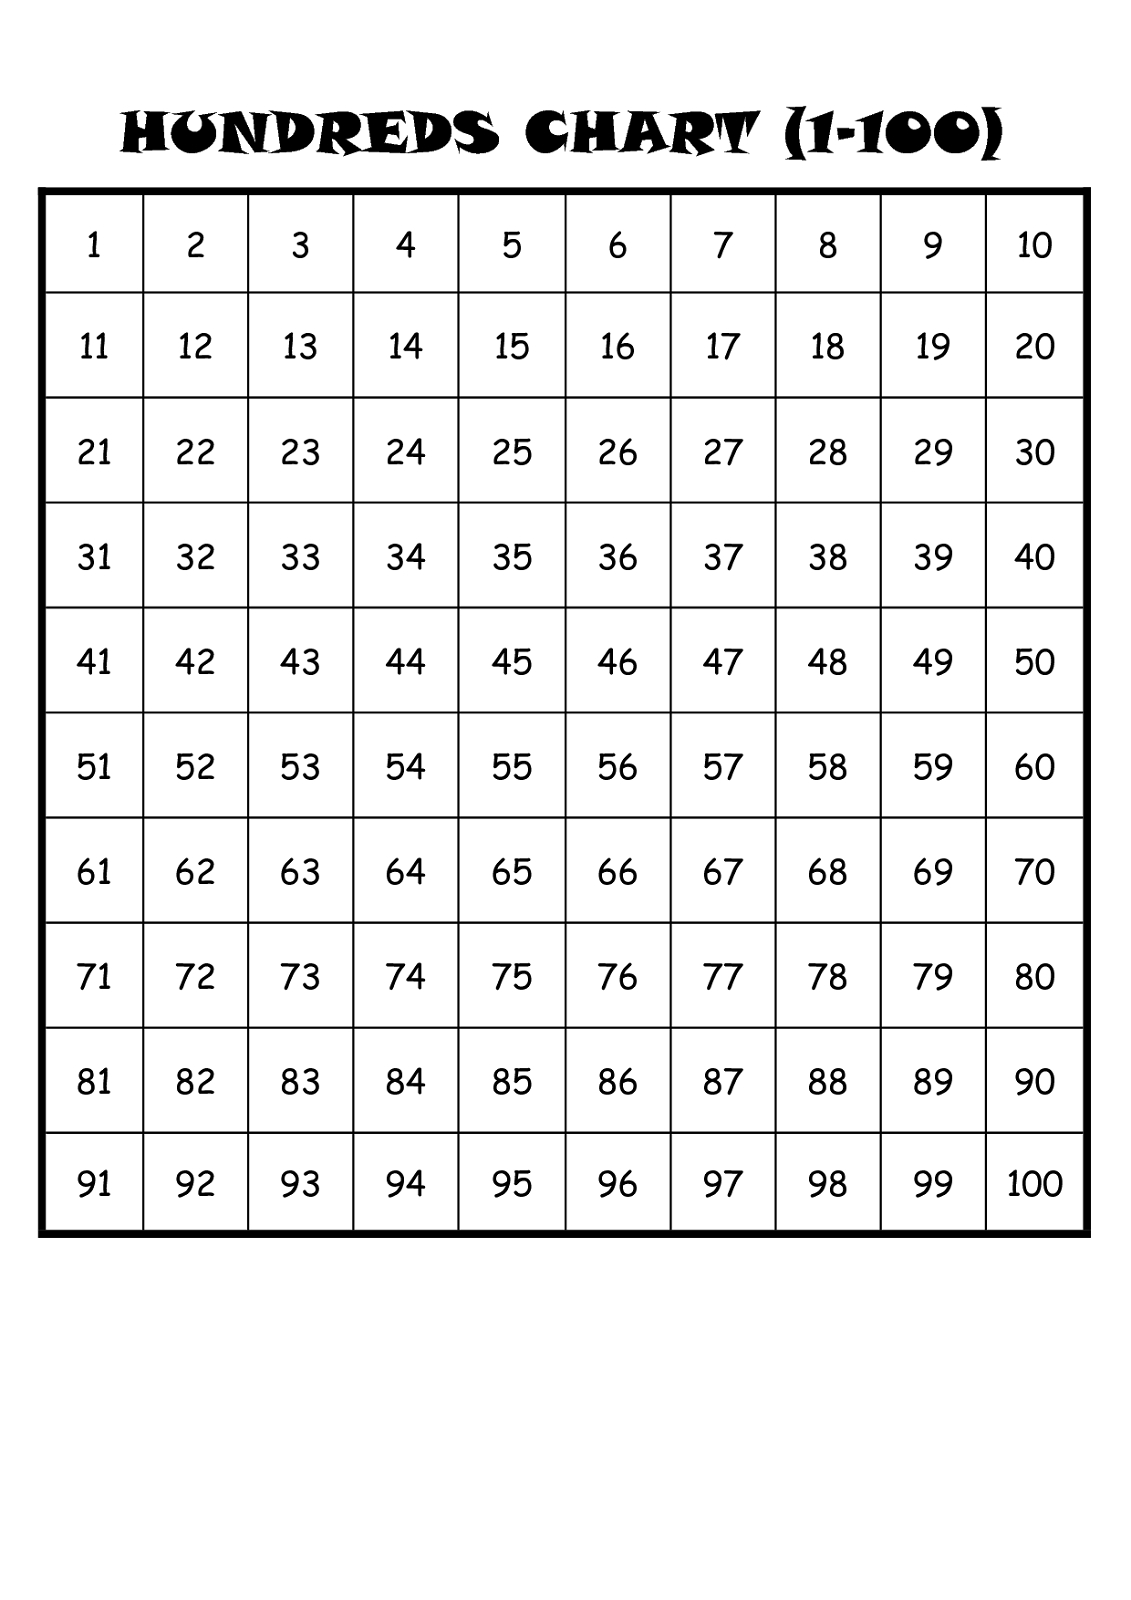 Number Sheet 1-100 To Print | Math Worksheets For Kids | Pinterest - Free Printable Number Worksheets 1 100